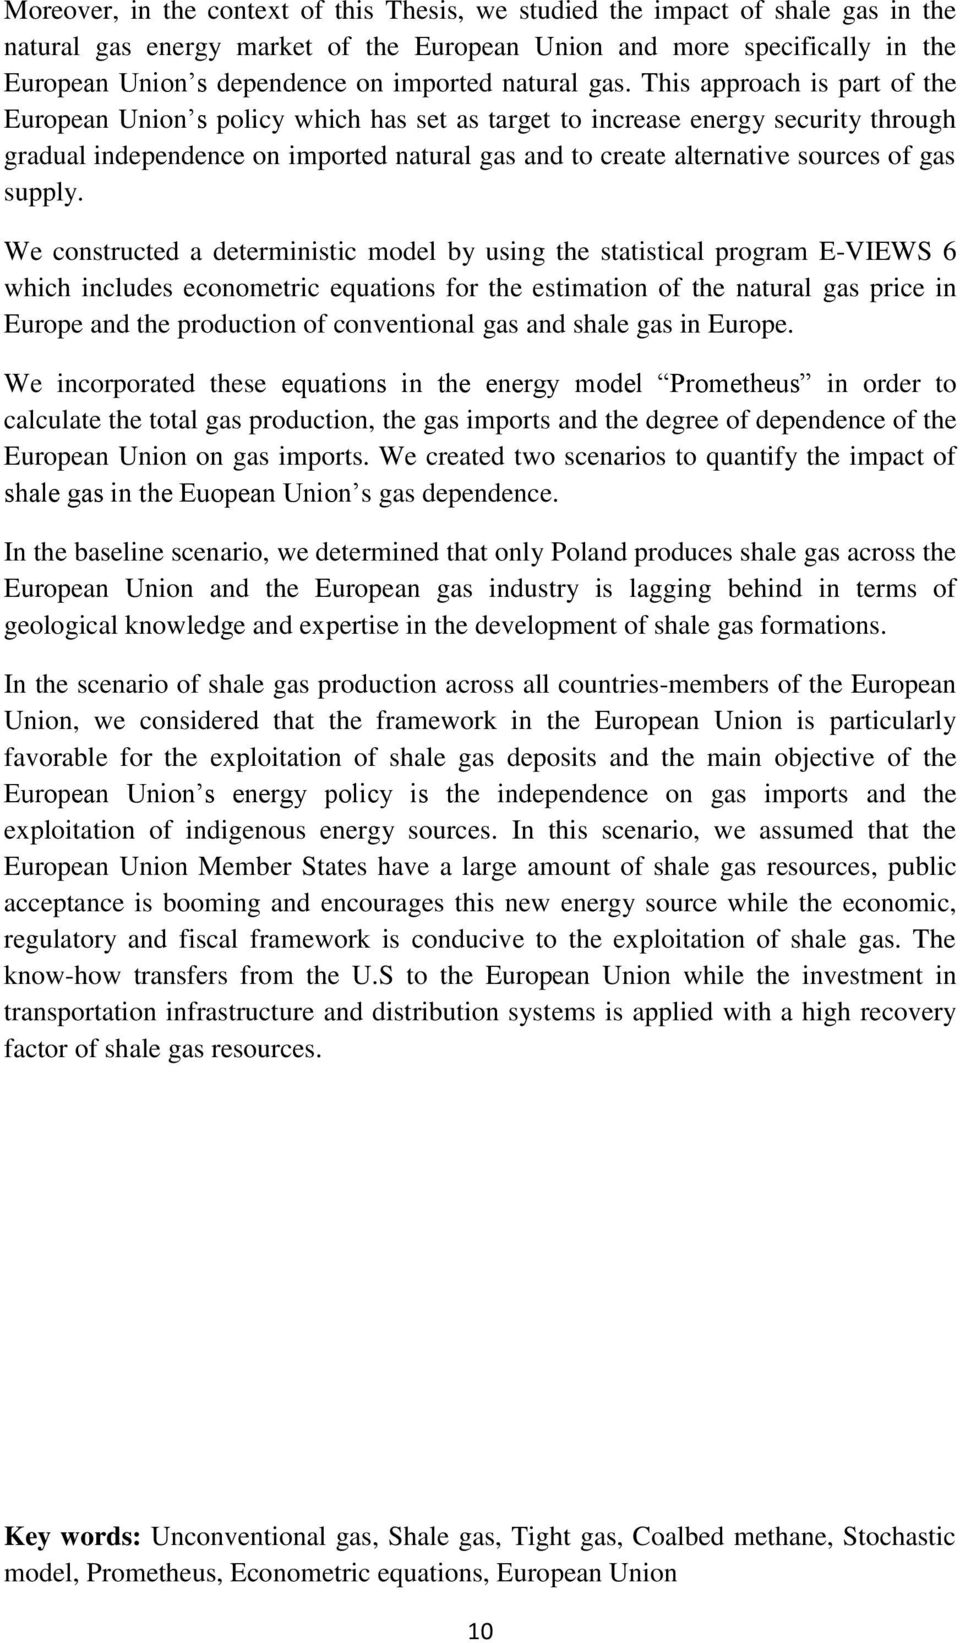 This approach is part of the European Union s policy which has set as target to increase energy security through gradual independence on imported natural gas and to create alternative sources of gas